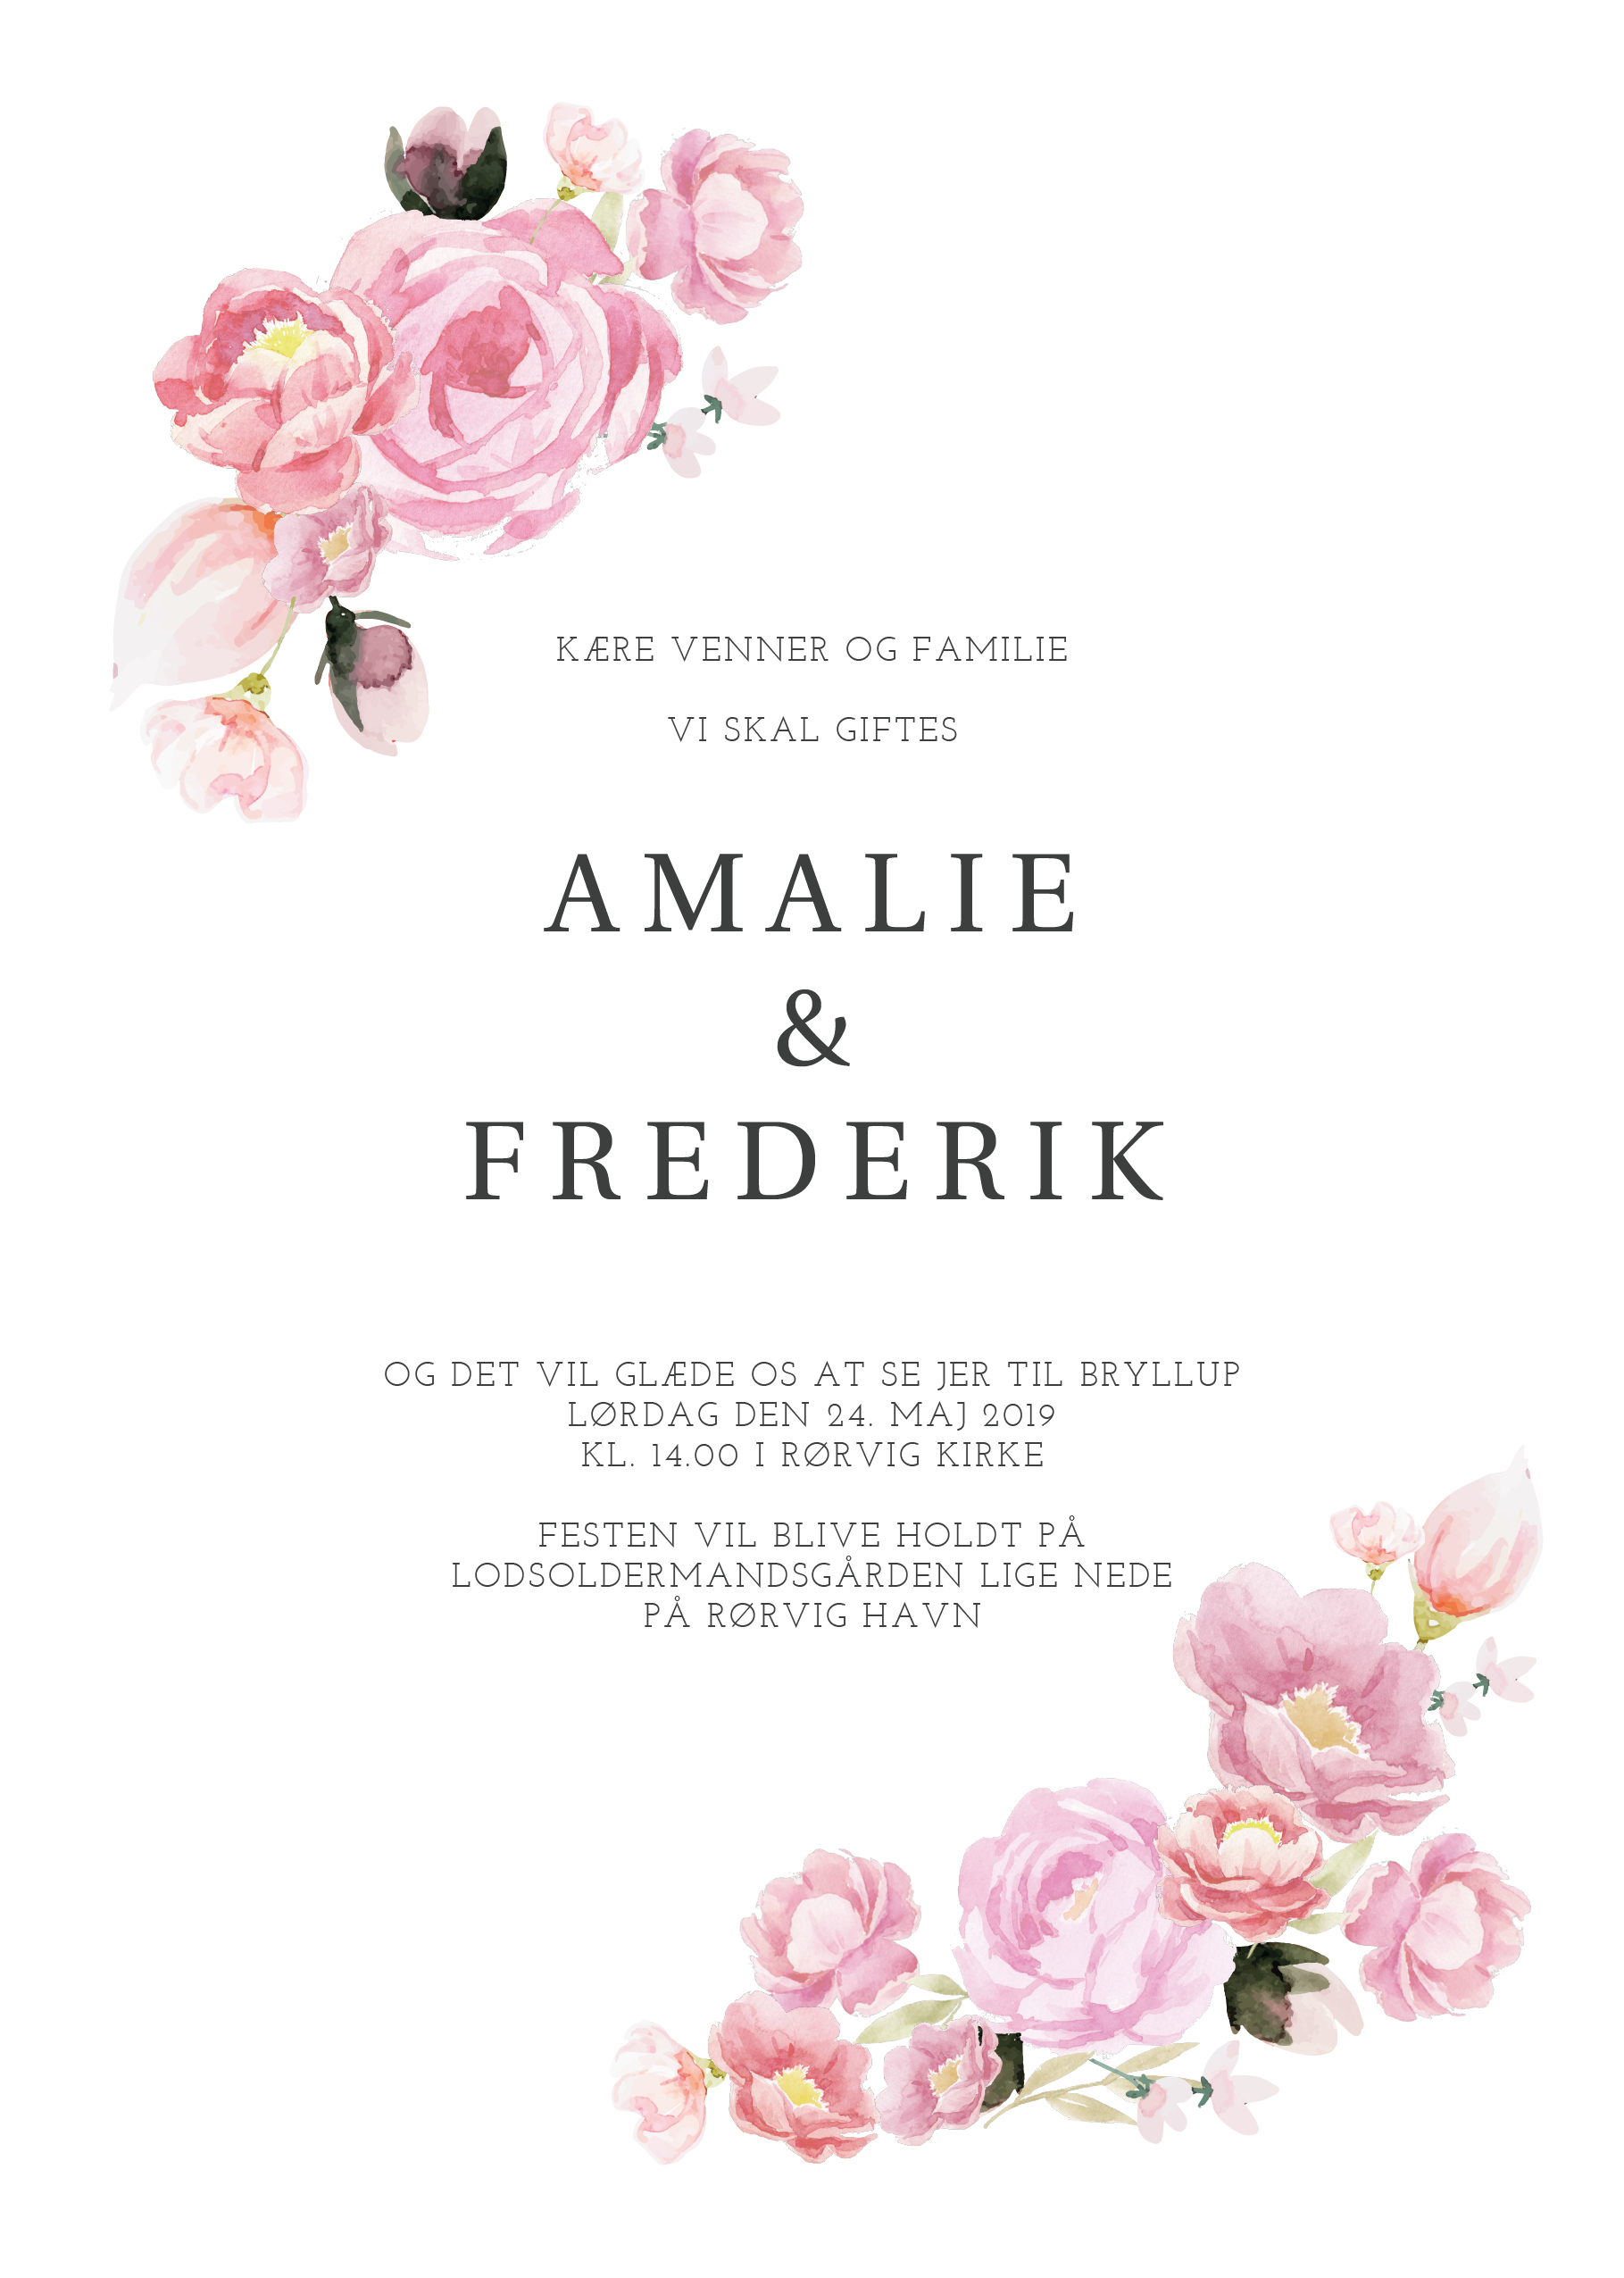 /site/resources/images/card-photos/card-thumbnails/Amalie & Frederik/8b36e023a6ba3baa62ca72dd1903e86b_front_thumb.jpg